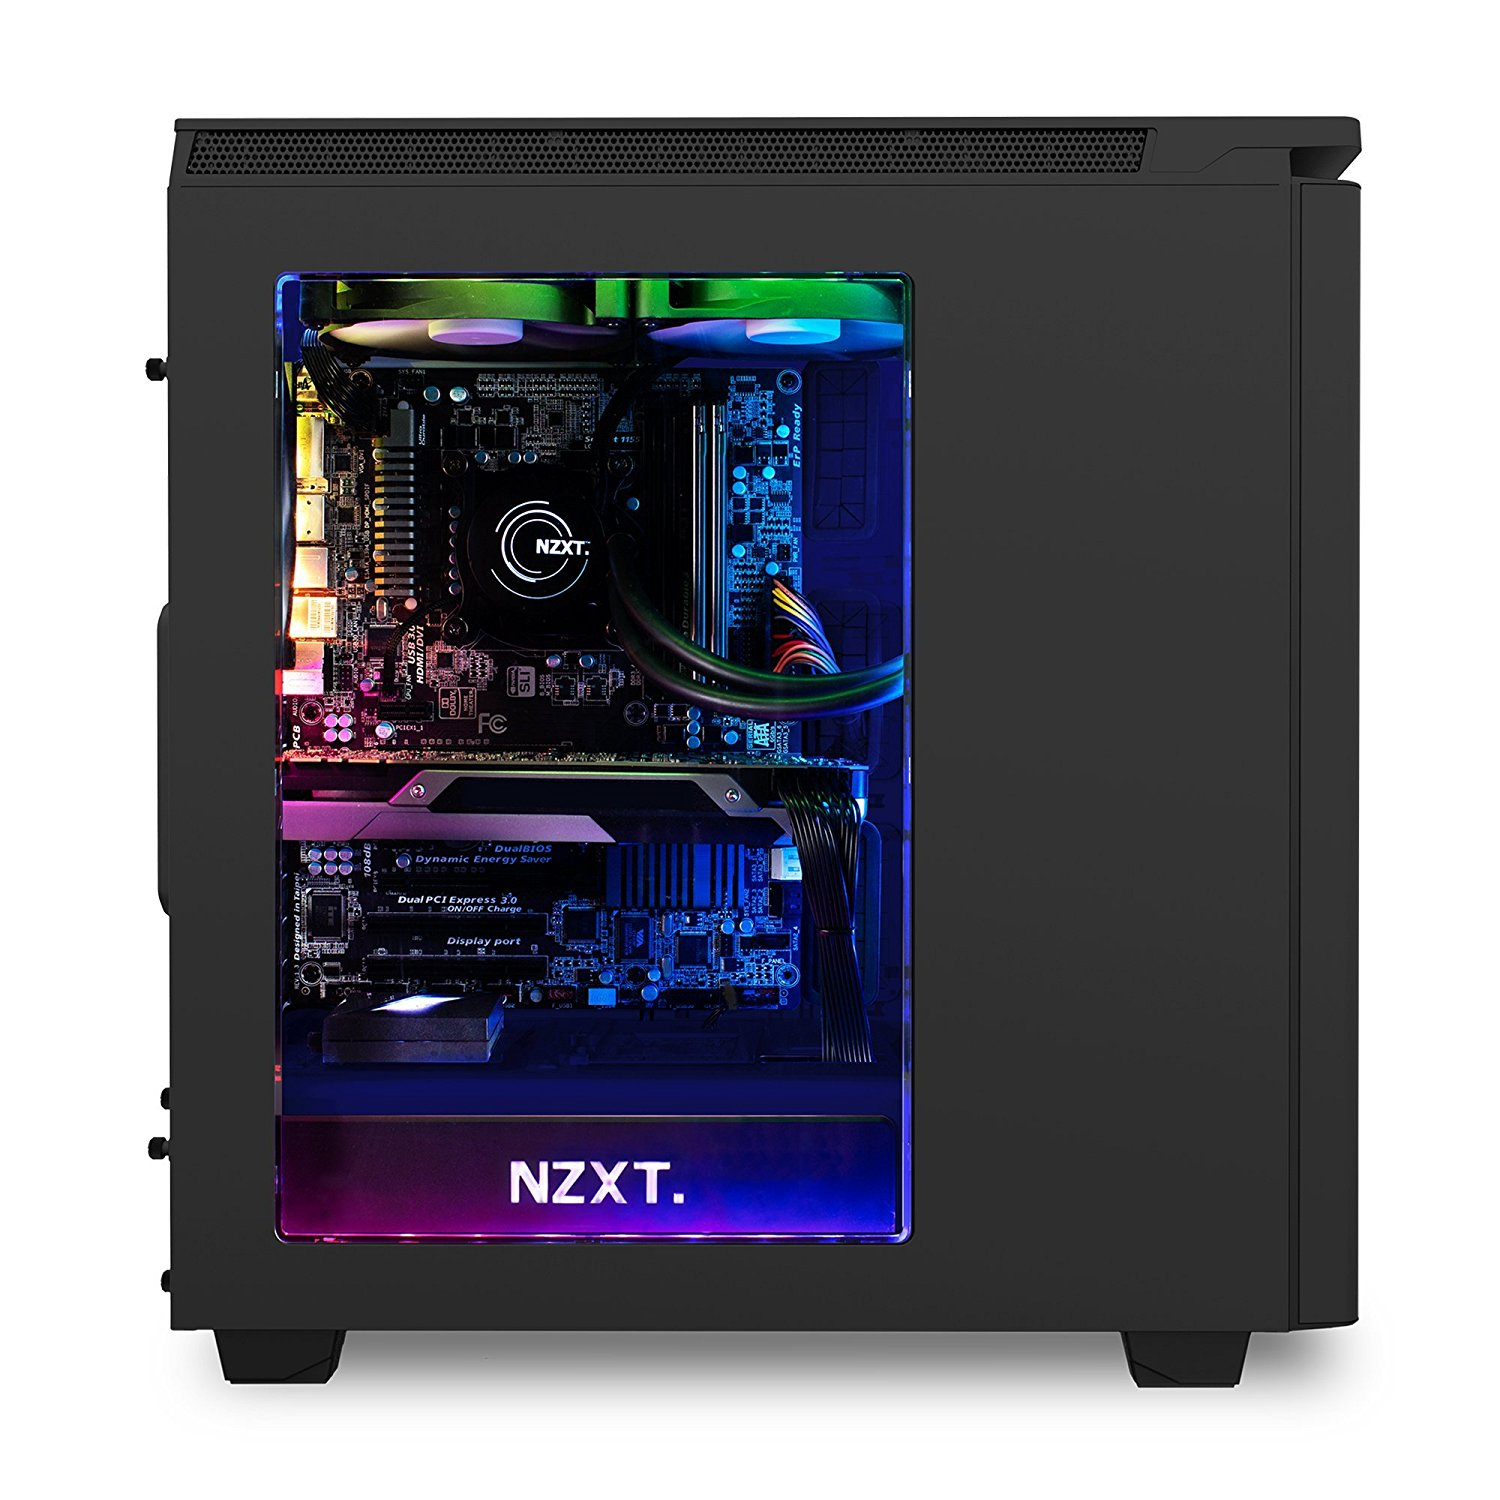 Nzxt advanced pc lighting hue plus _ac-hueps-m1